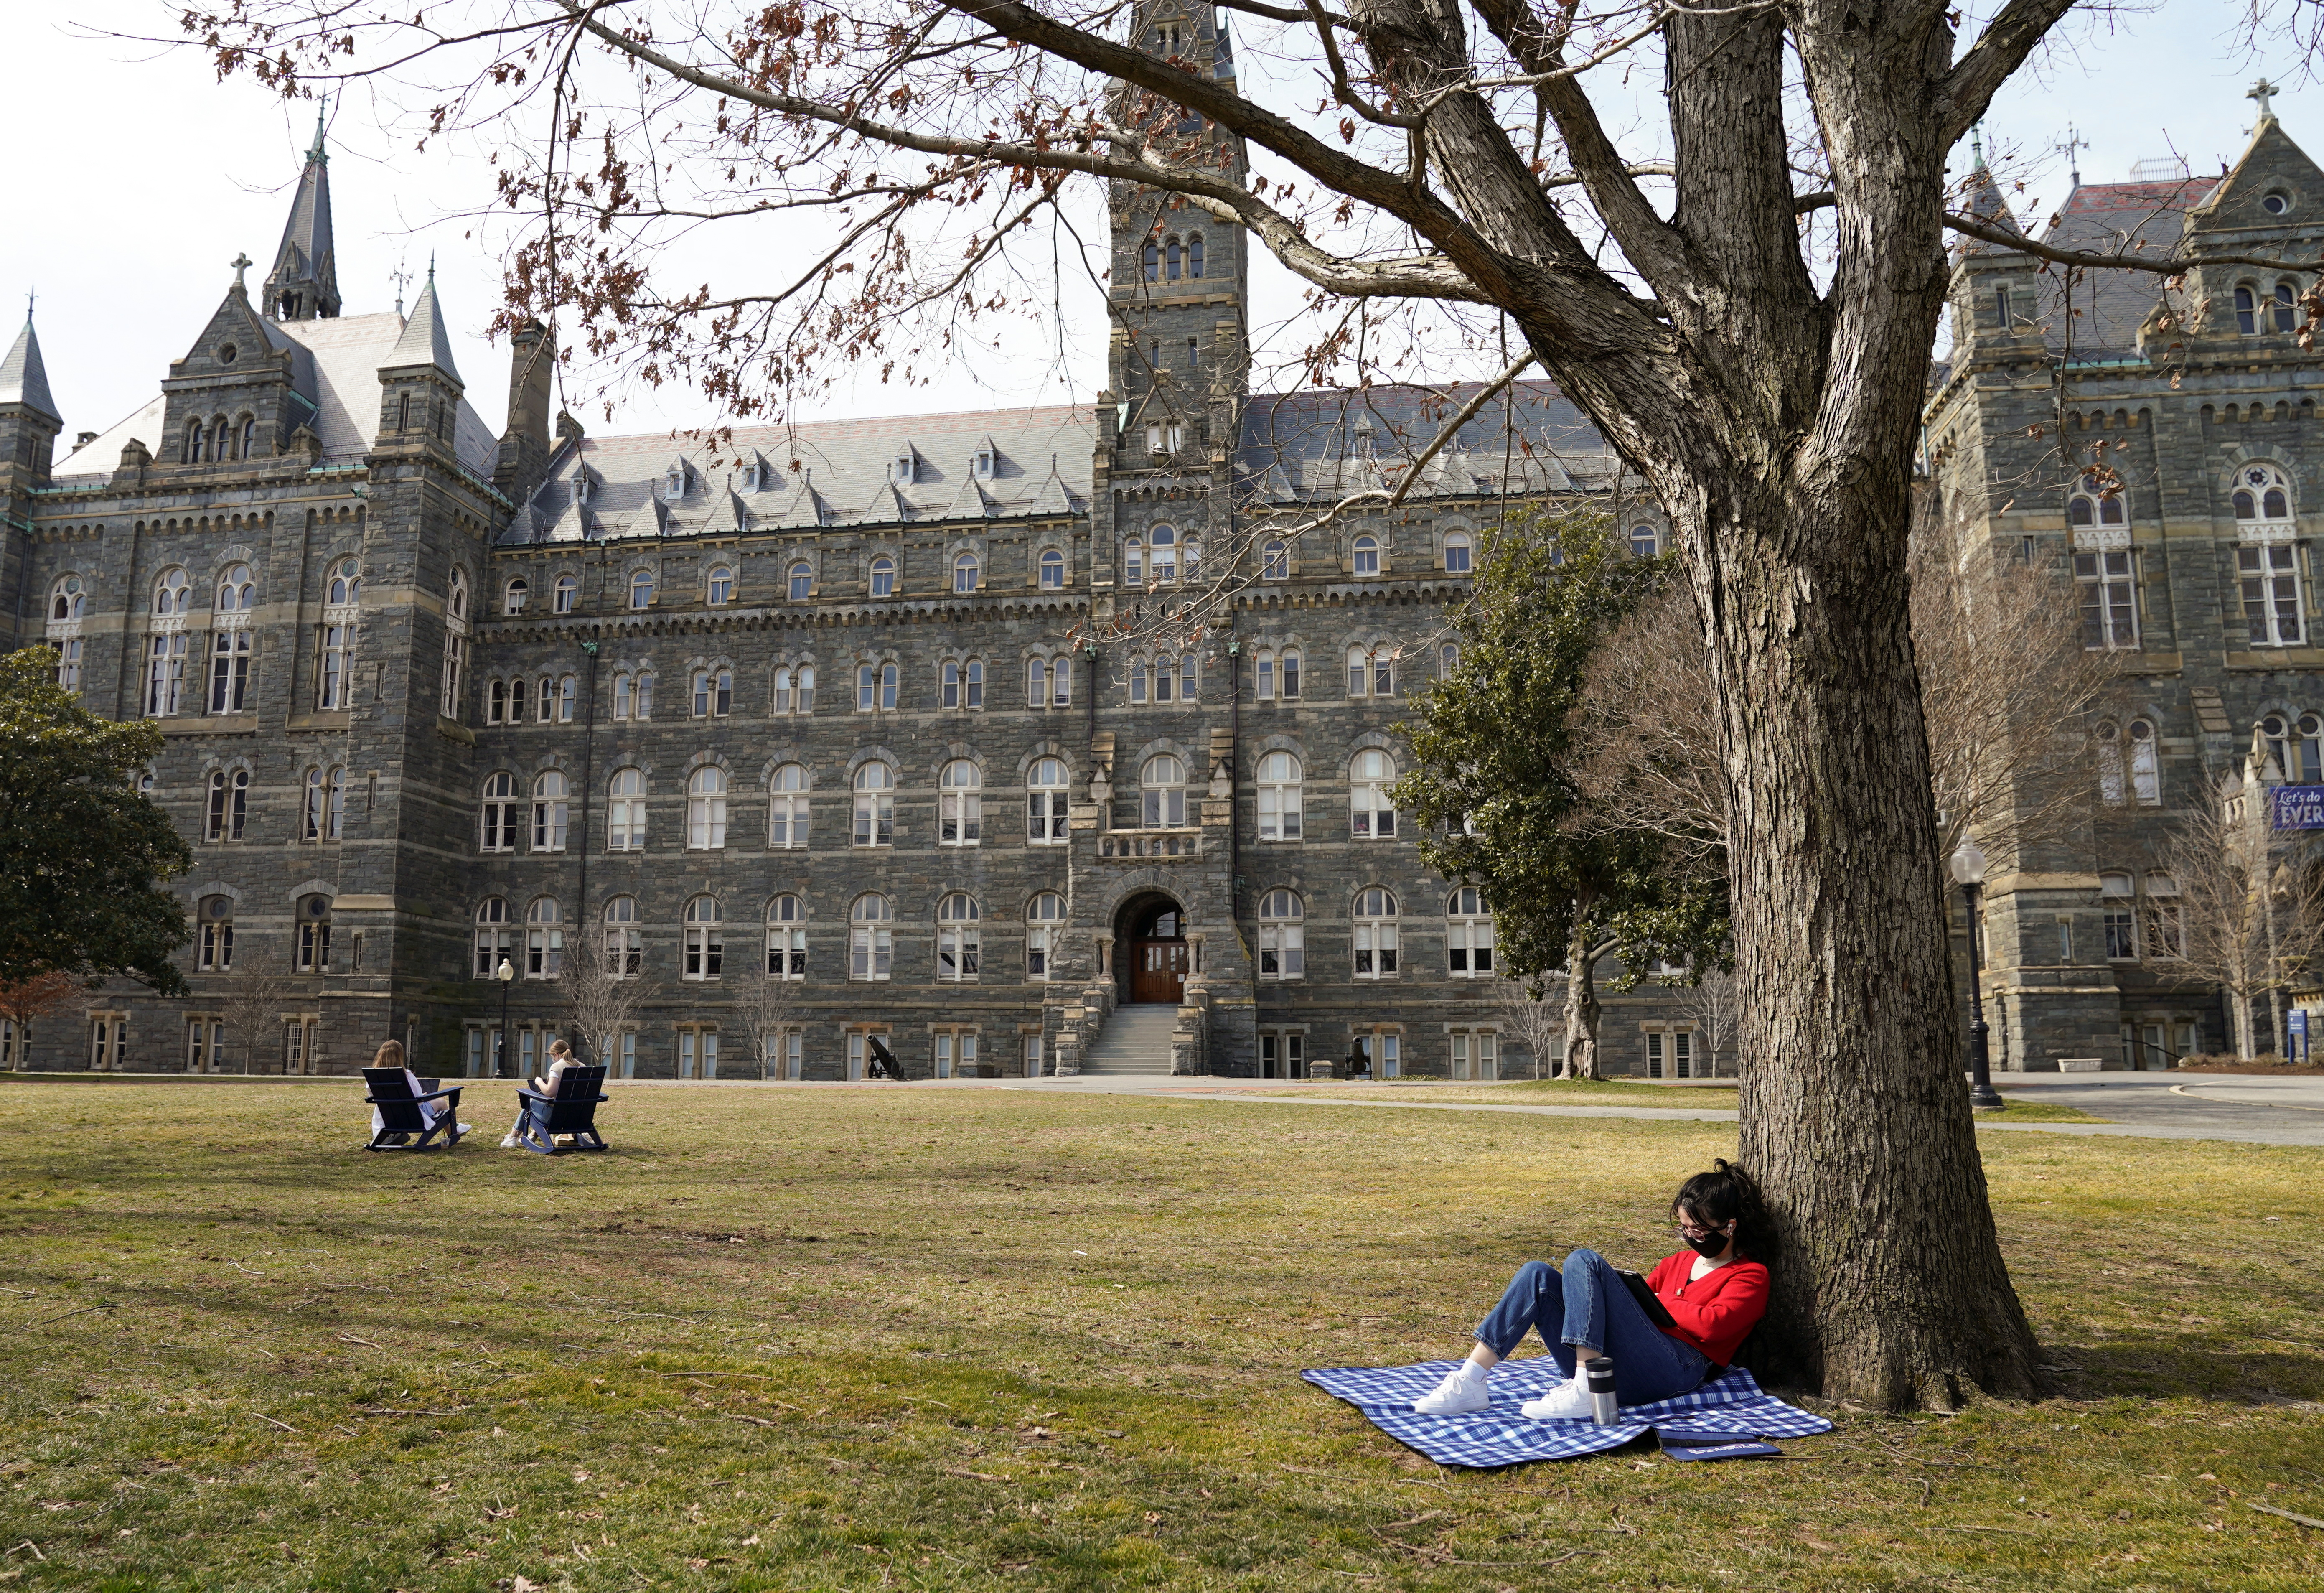 A student studies in the sunshine at Georgetown University in Washington, U.S., March 9, 2021. REUTERS/Kevin Lamarque